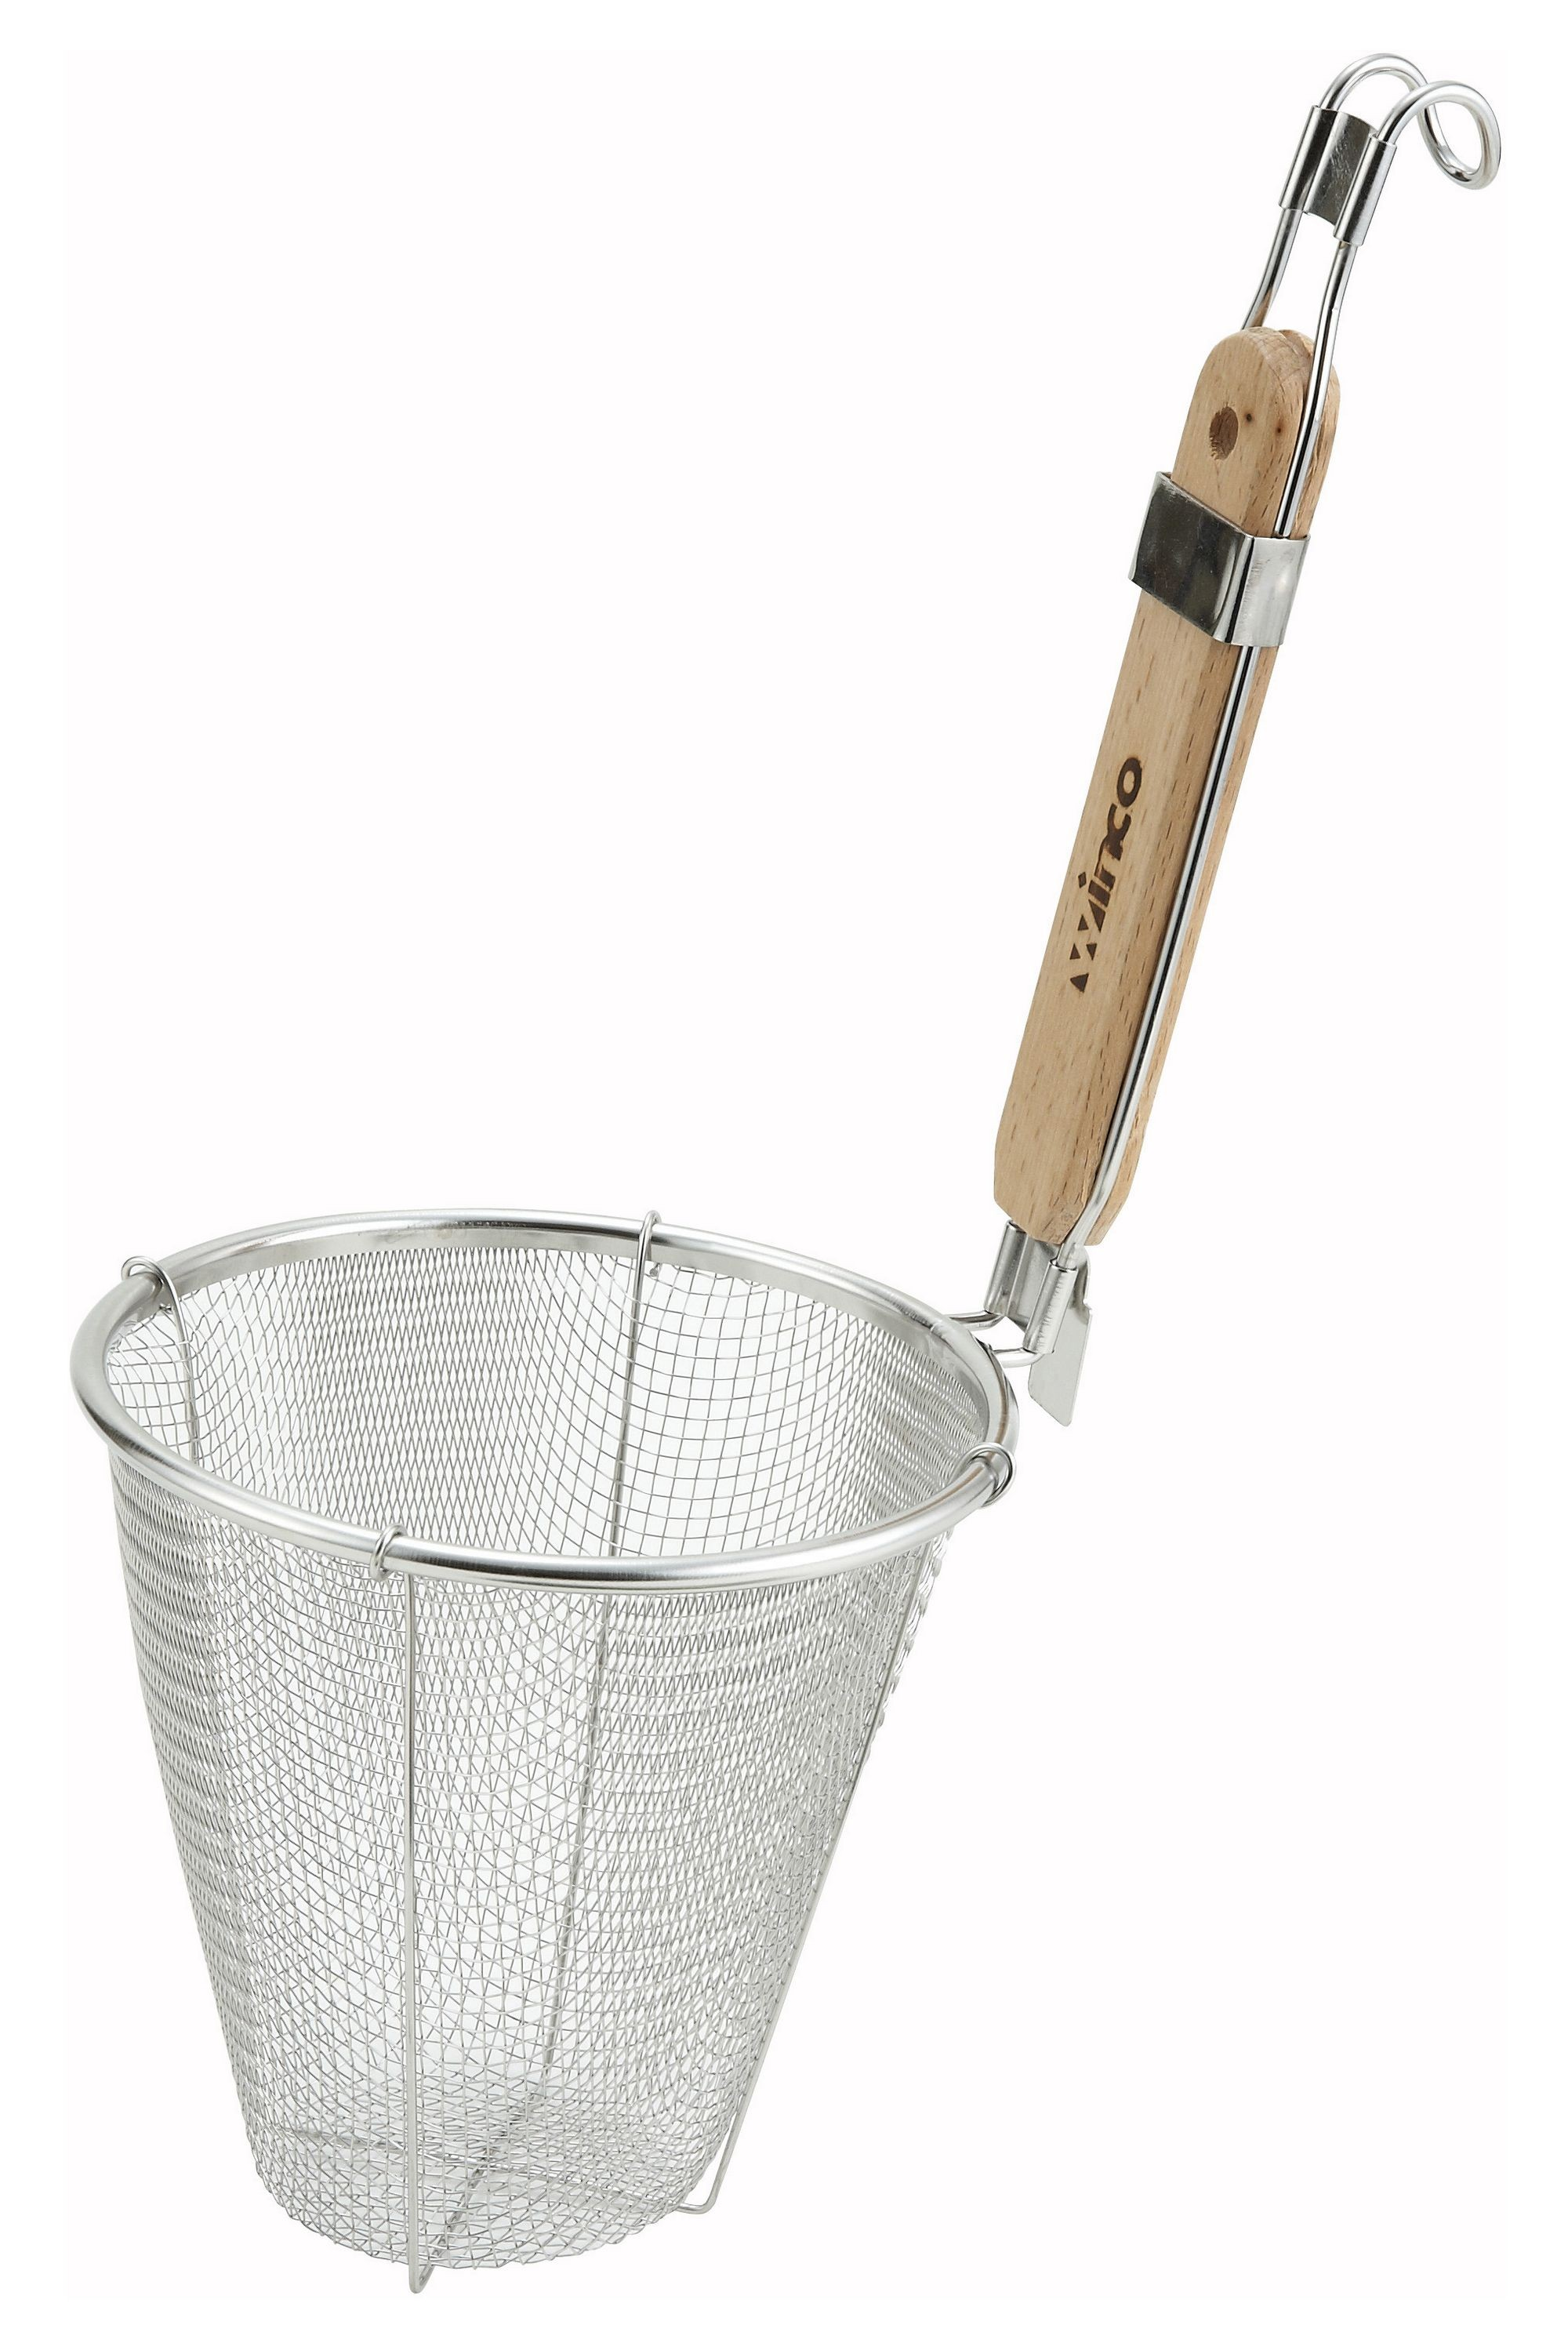 "Winco MSH-5 Stainless Steel Double Mesh Deep Bowl Strainer 5-1/2"" x 6-1/2"""